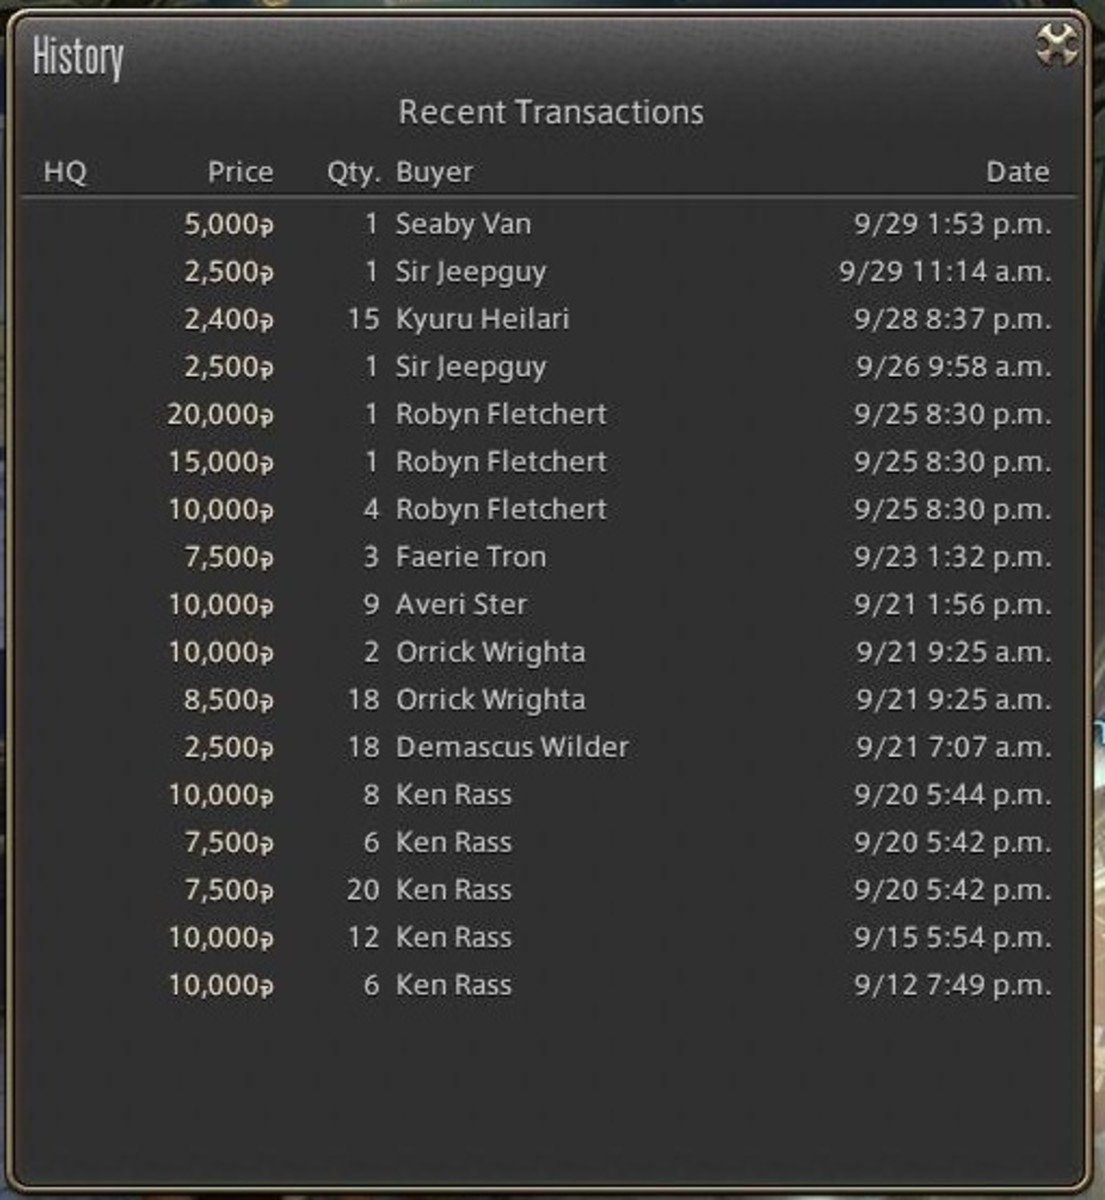 Clicking on the history will bring up the most recent transactions on the item, allowing you to see how the item typically sells.